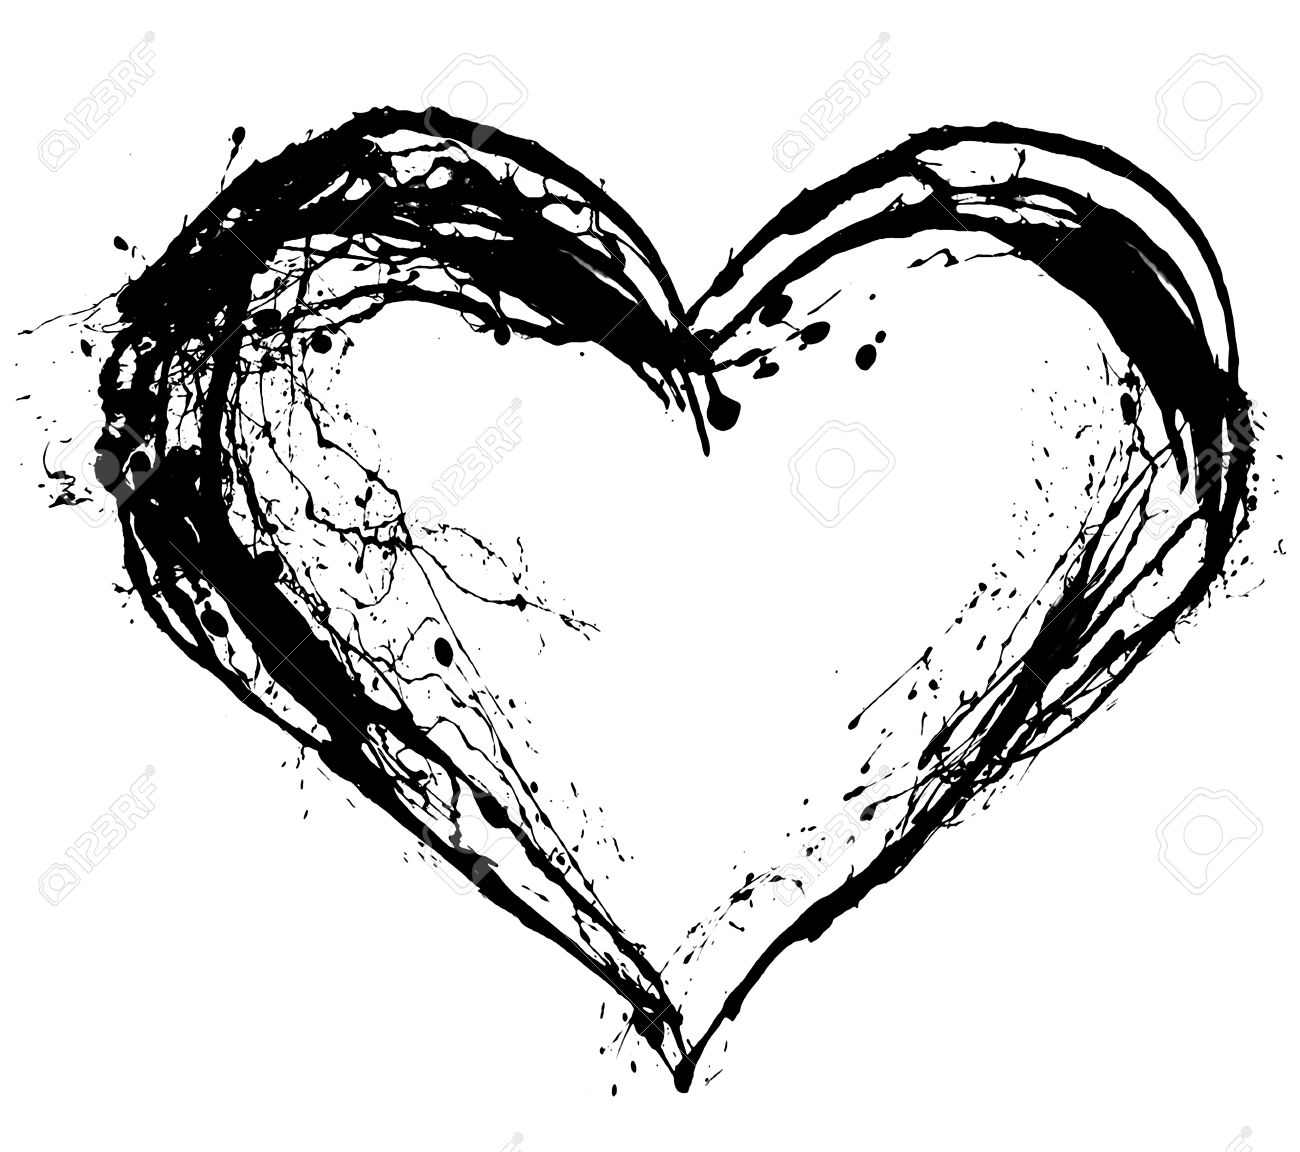 Abstract Valentine Black Heart On White Background Stock Photo ...